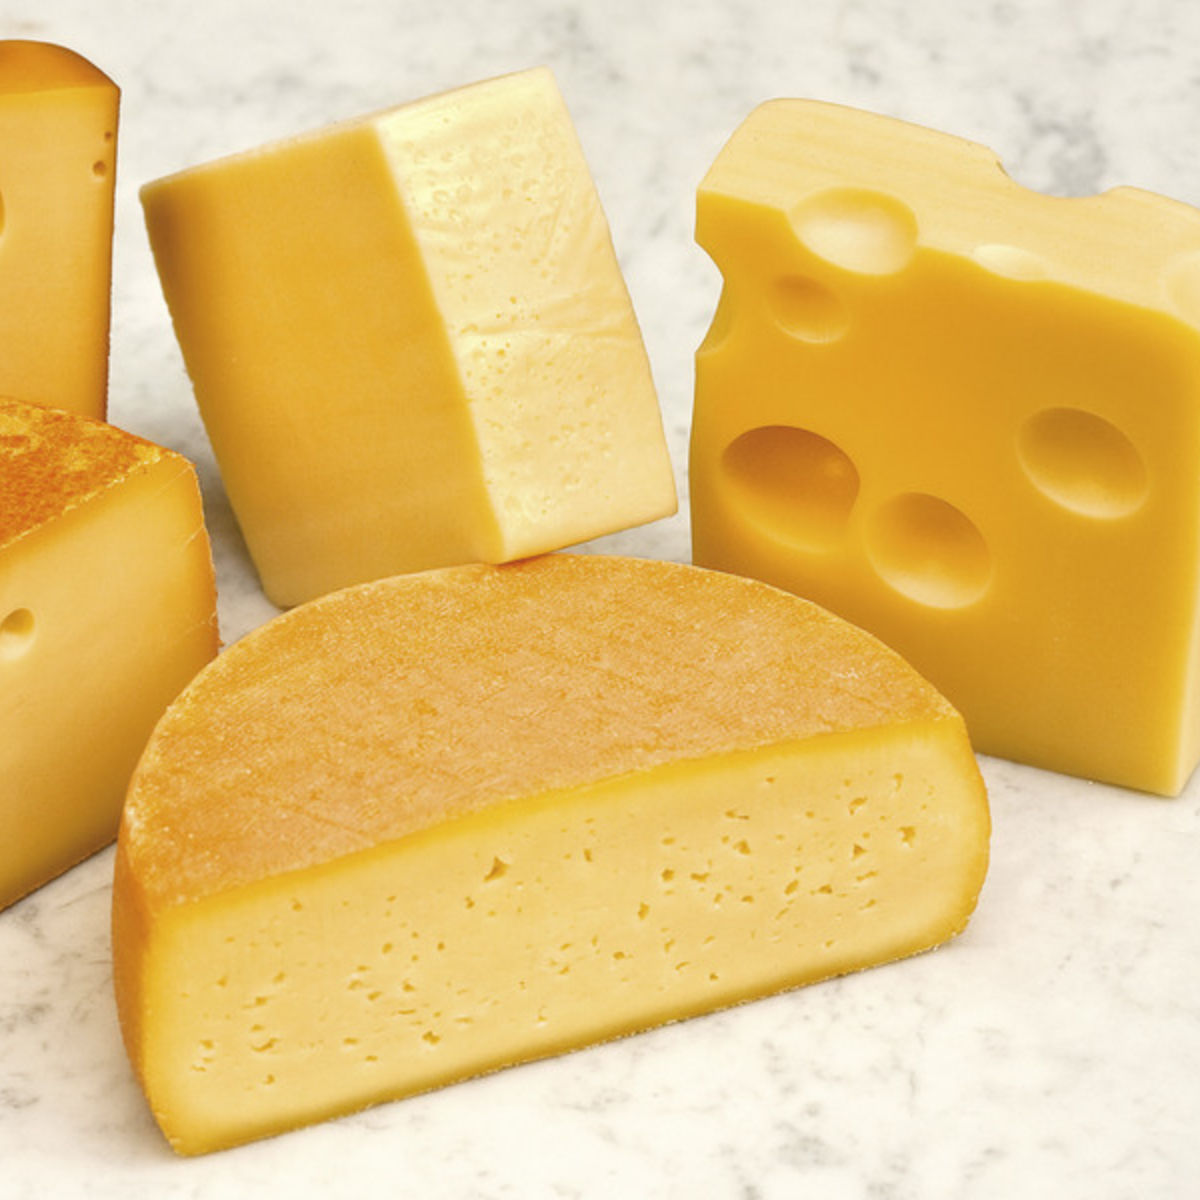 The picture shows several kinds of sliced cheese.